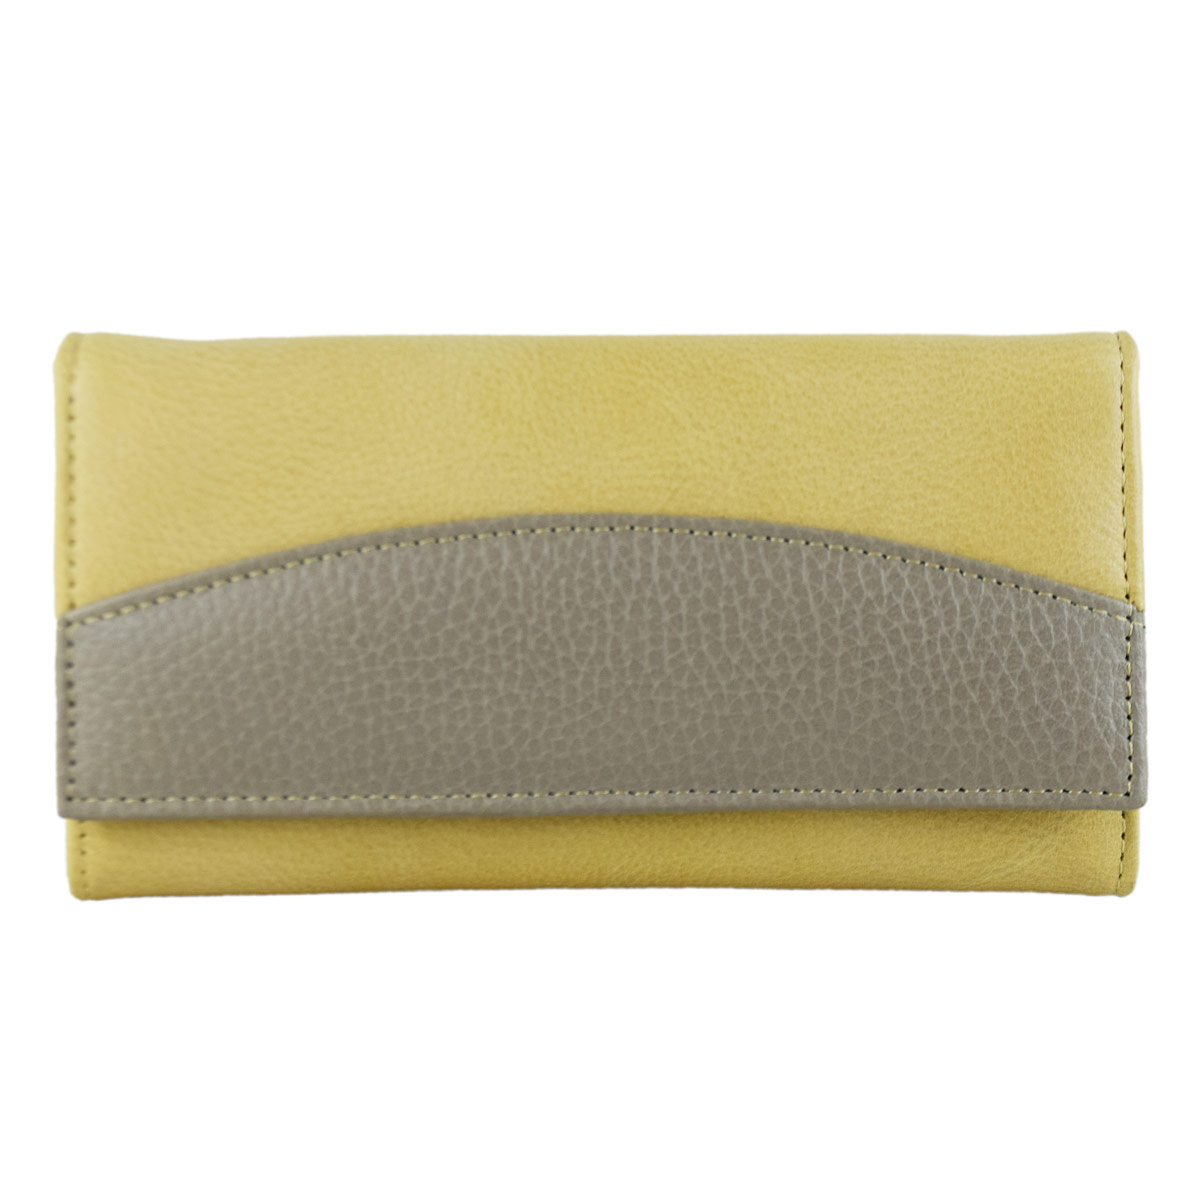 BEAUTIFUL YELLOWISH GREEN LADIES CLUTCH